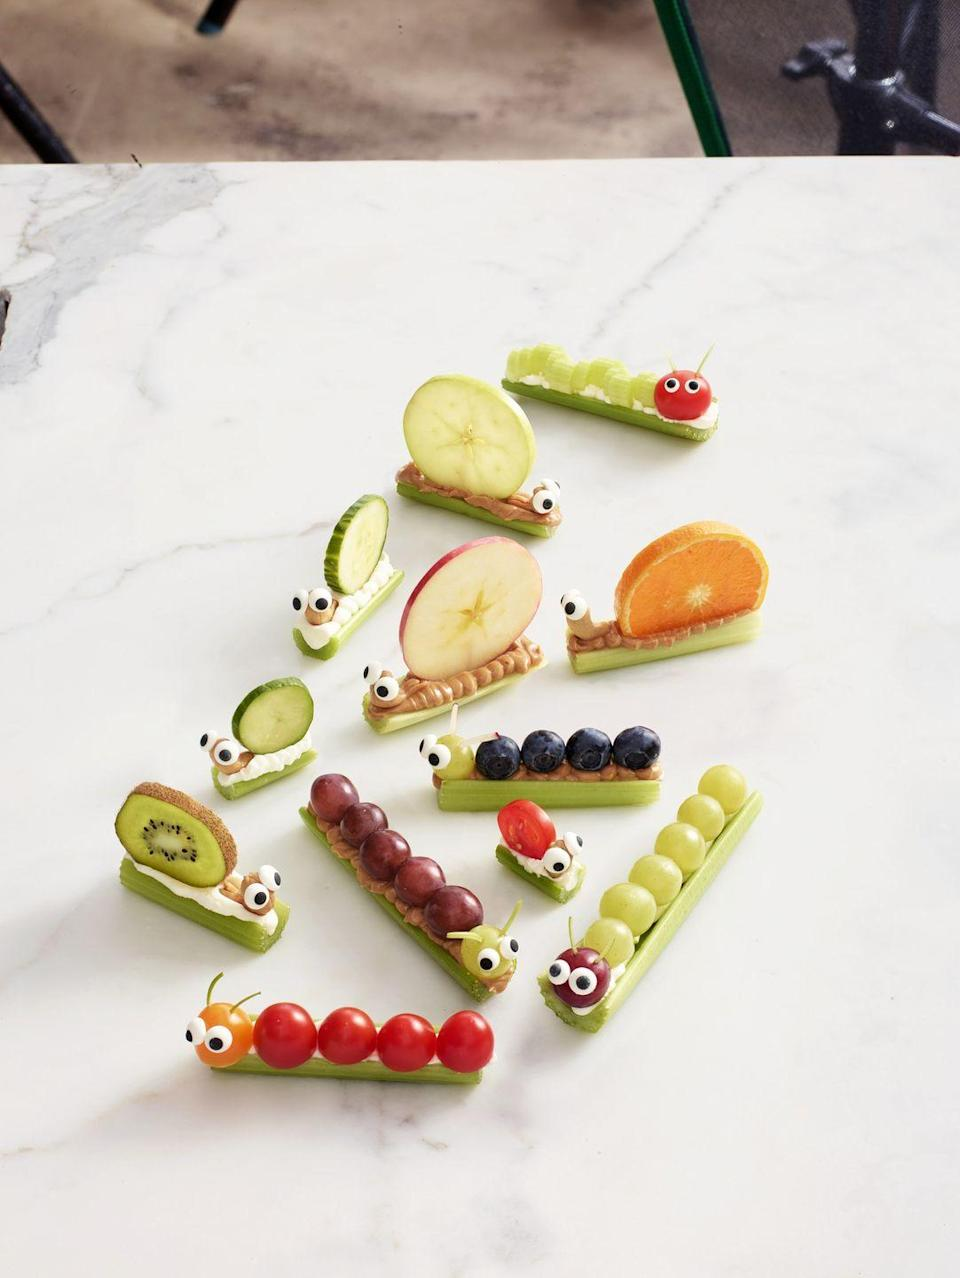 """<p>These adorable snacks take ants on a log to the next level.</p><p><a href=""""https://www.womansday.com/food-recipes/food-drinks/recipes/a55811/celery-snails-caterpillars-recipe/"""" rel=""""nofollow noopener"""" target=""""_blank"""" data-ylk=""""slk:Get the Celery Snails & Caterpillars recipe."""" class=""""link rapid-noclick-resp""""><u><u><em>Get the Celery Snails & Caterpillars recipe.</em></u></u></a></p>"""